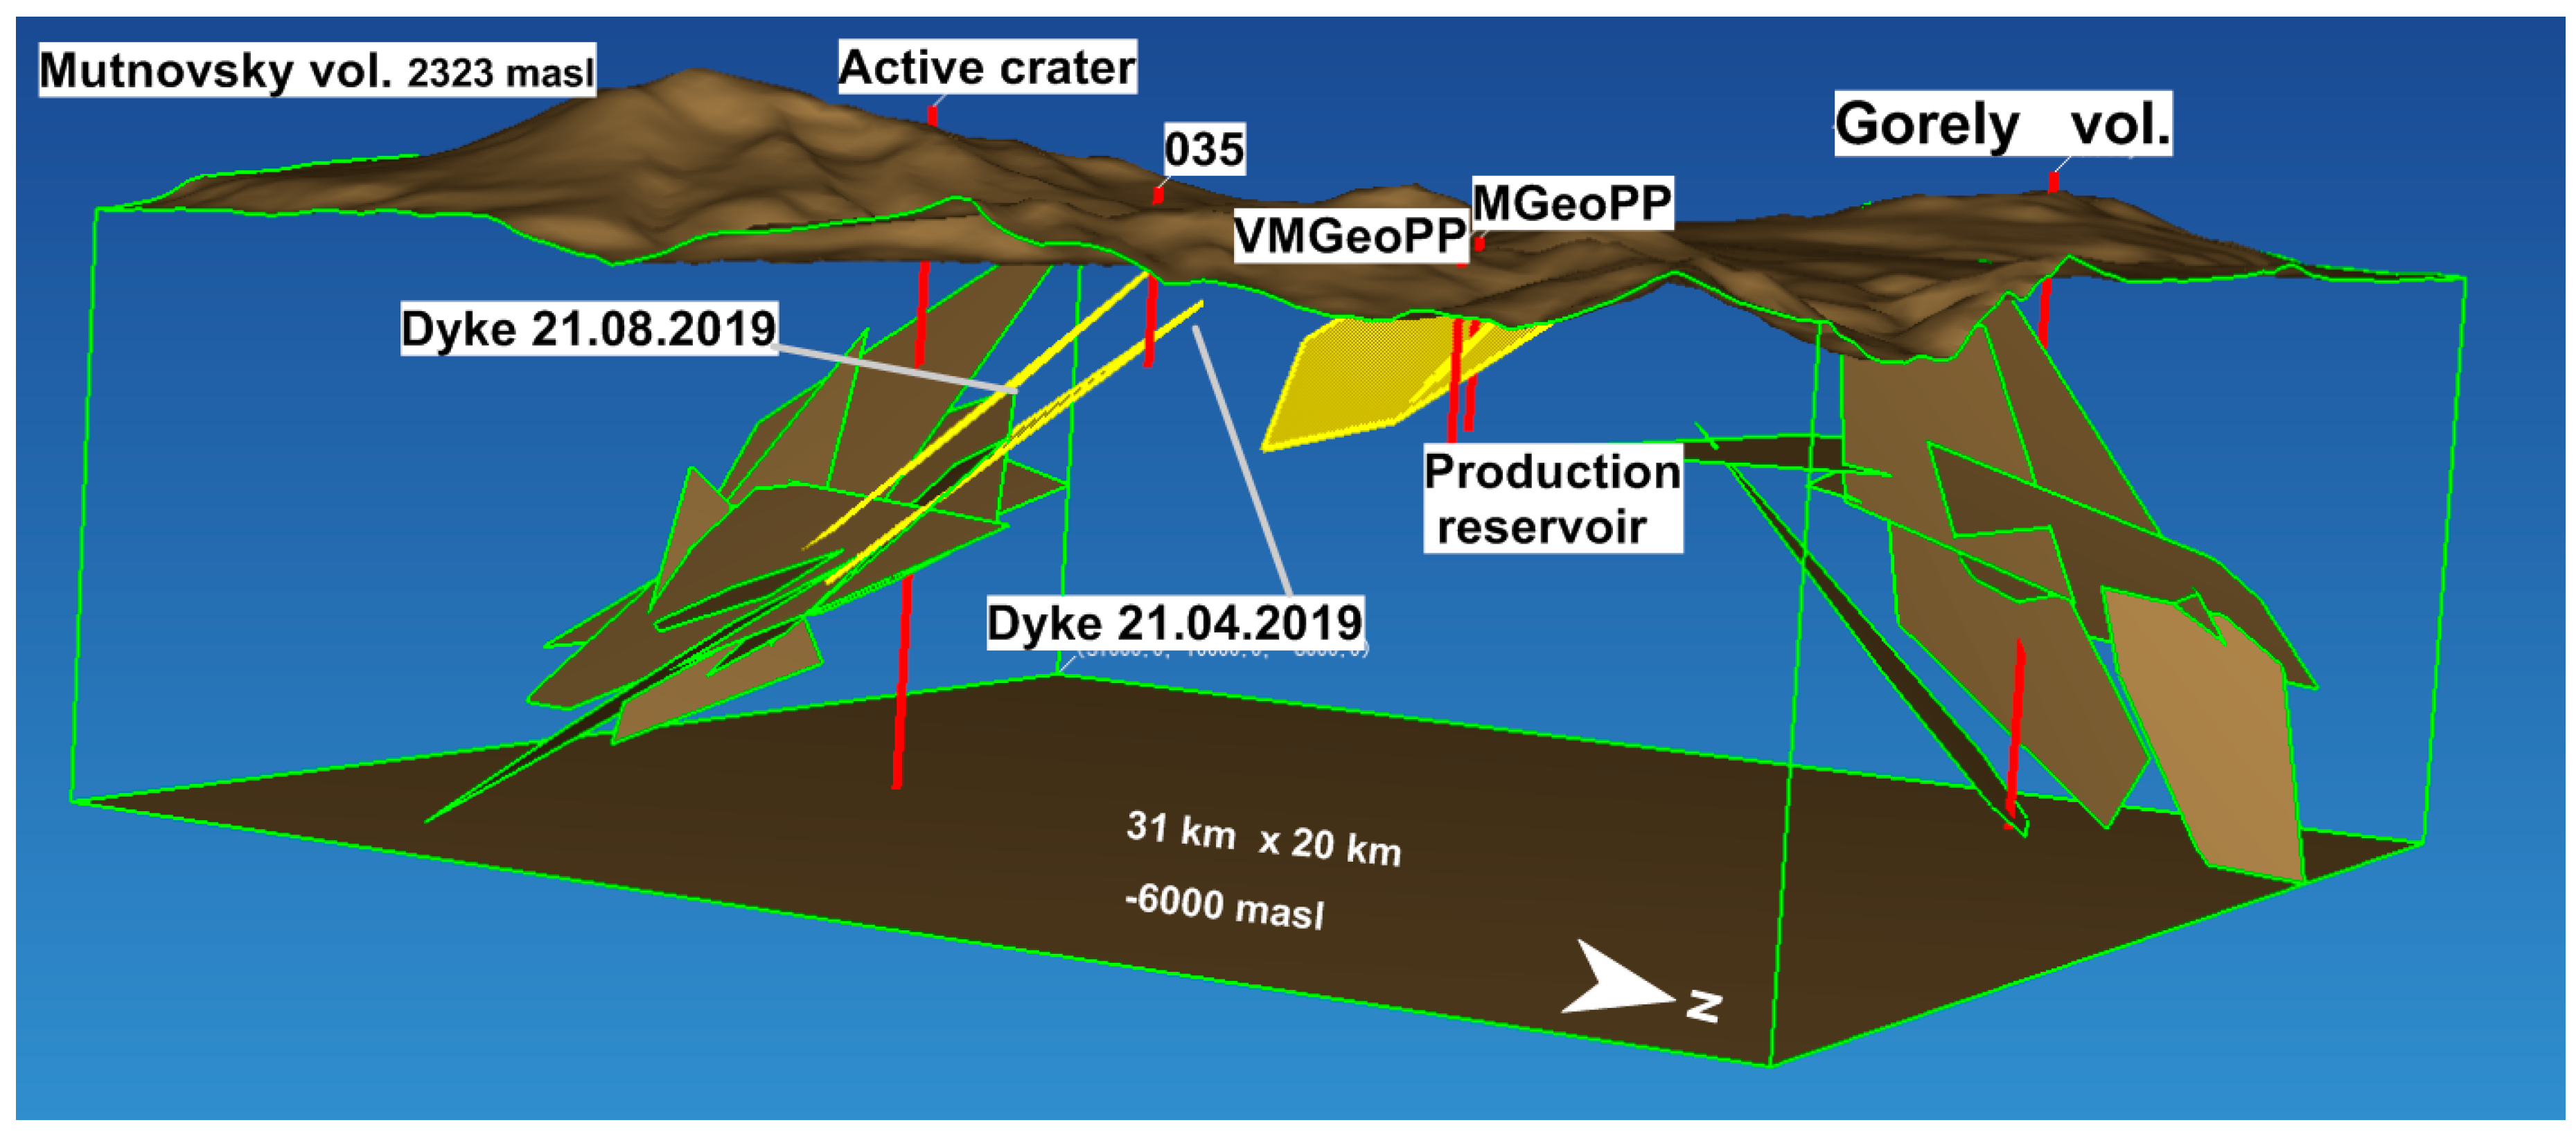 Geosciences Free Full Text Magma Fracking Beneath Active Volcanoes Based On Seismic Data And Hydrothermal Activity Observations